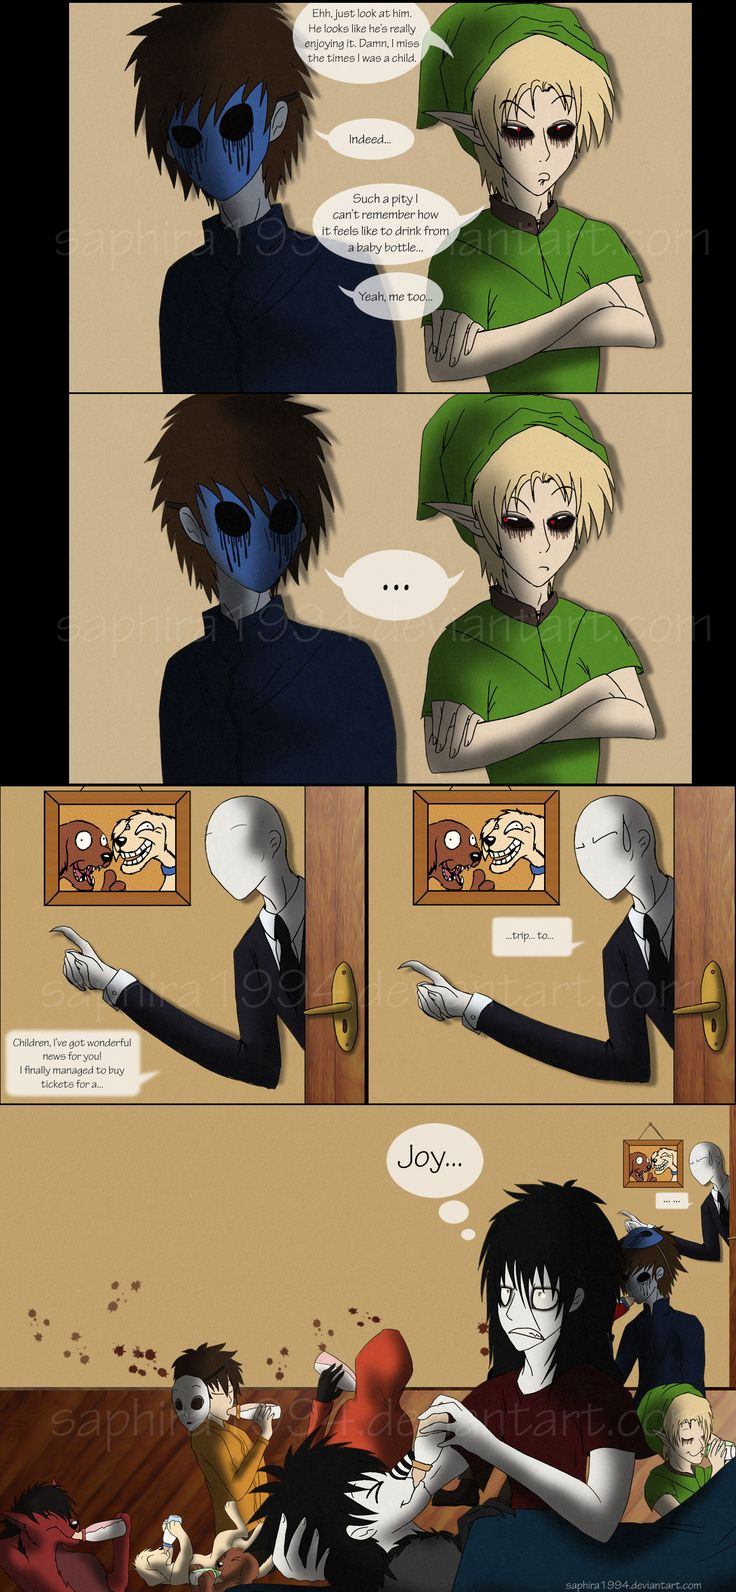 Adventures With Jeff The Killer - PAGE 28 by Sapphiresenthiss on deviantART